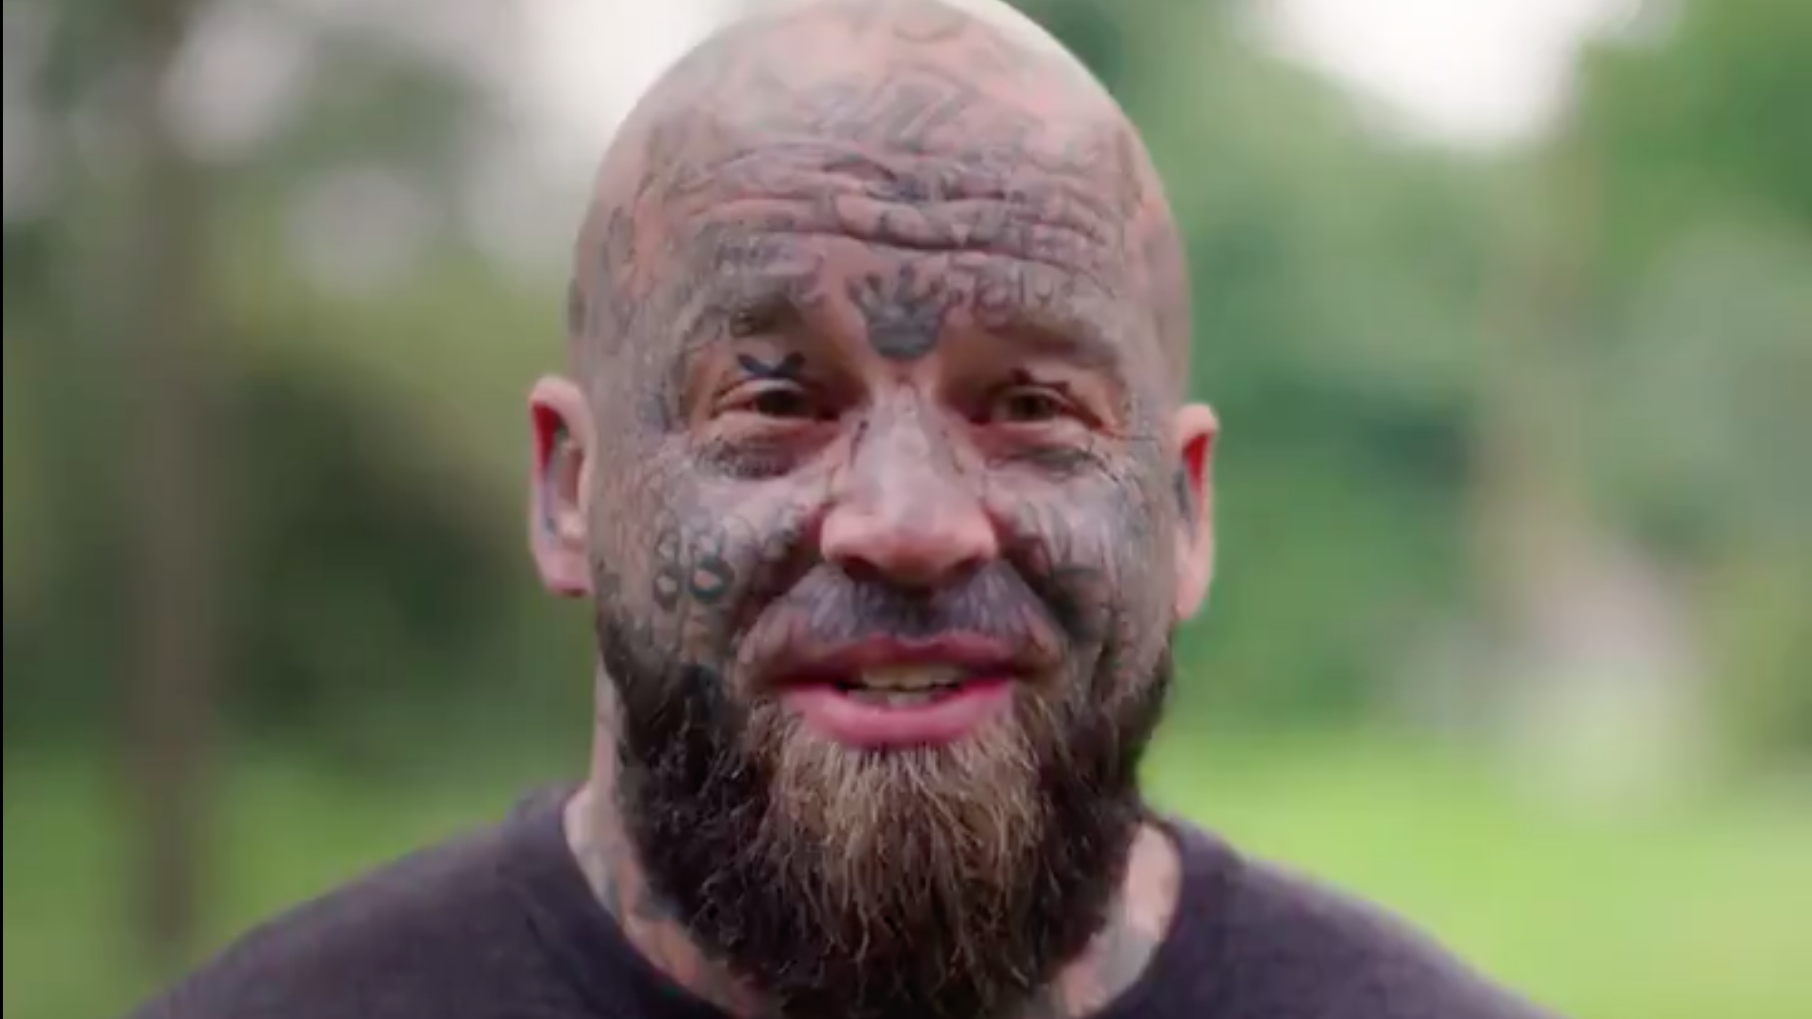 Sky History denies The Chop contestant's tattoos have 'ideological meaning'